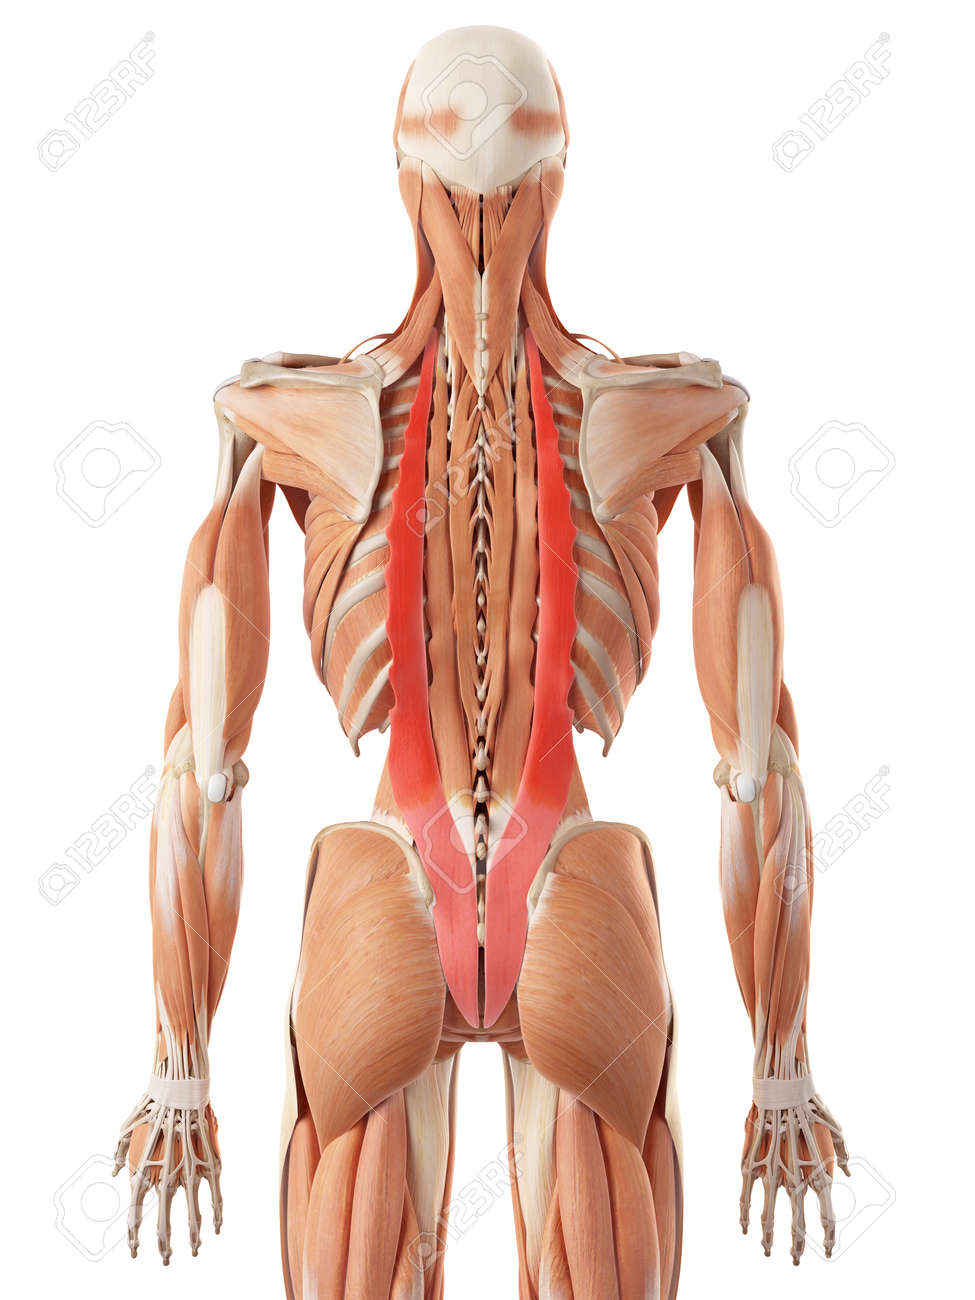 medically accurate illustration of the iliocostalis stock photo